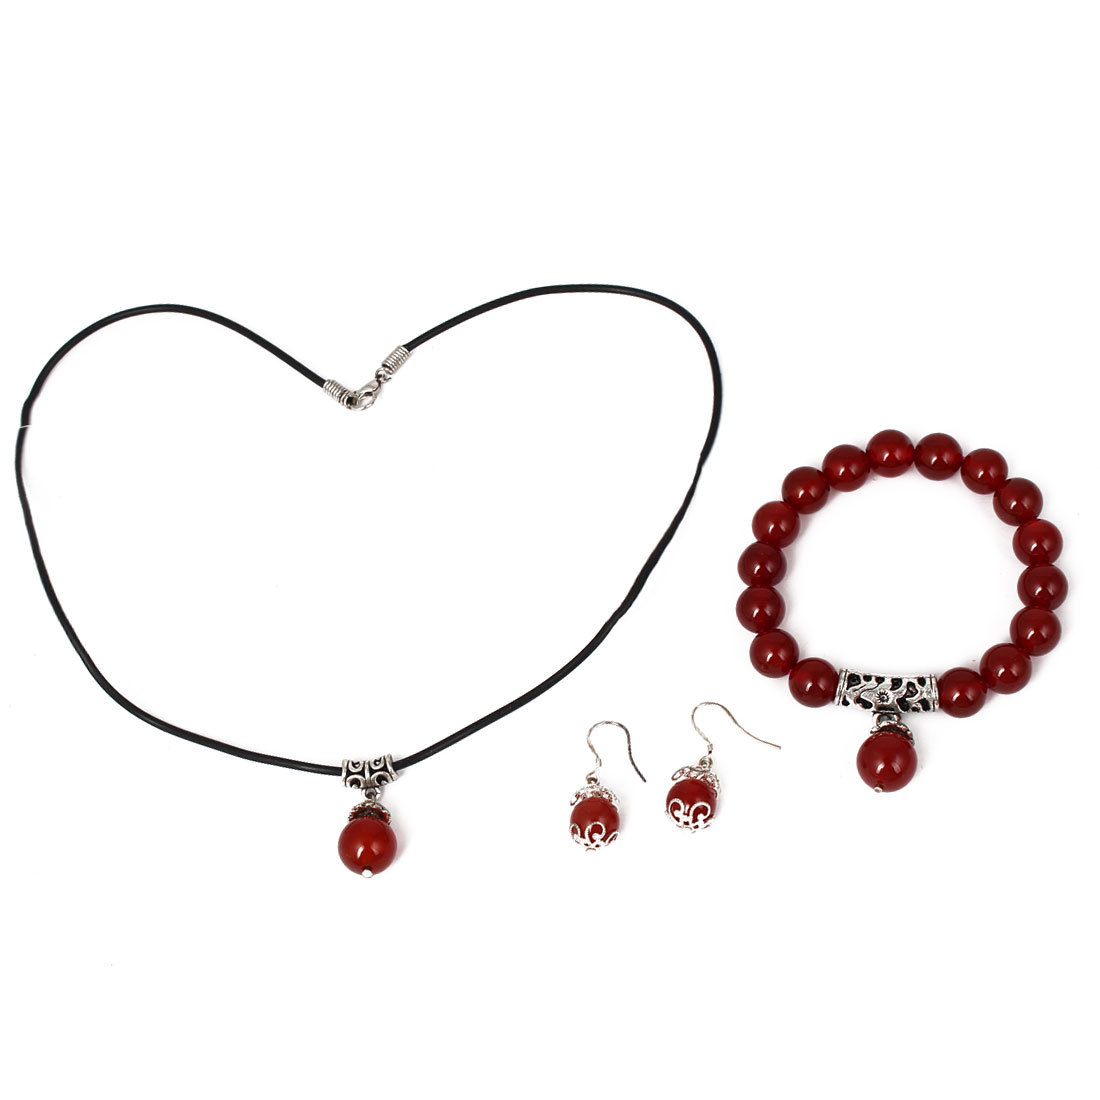 Women Plastic Beads Design Necklace Bracelet Bangle Hook Earrings Set 3 in 1 Red